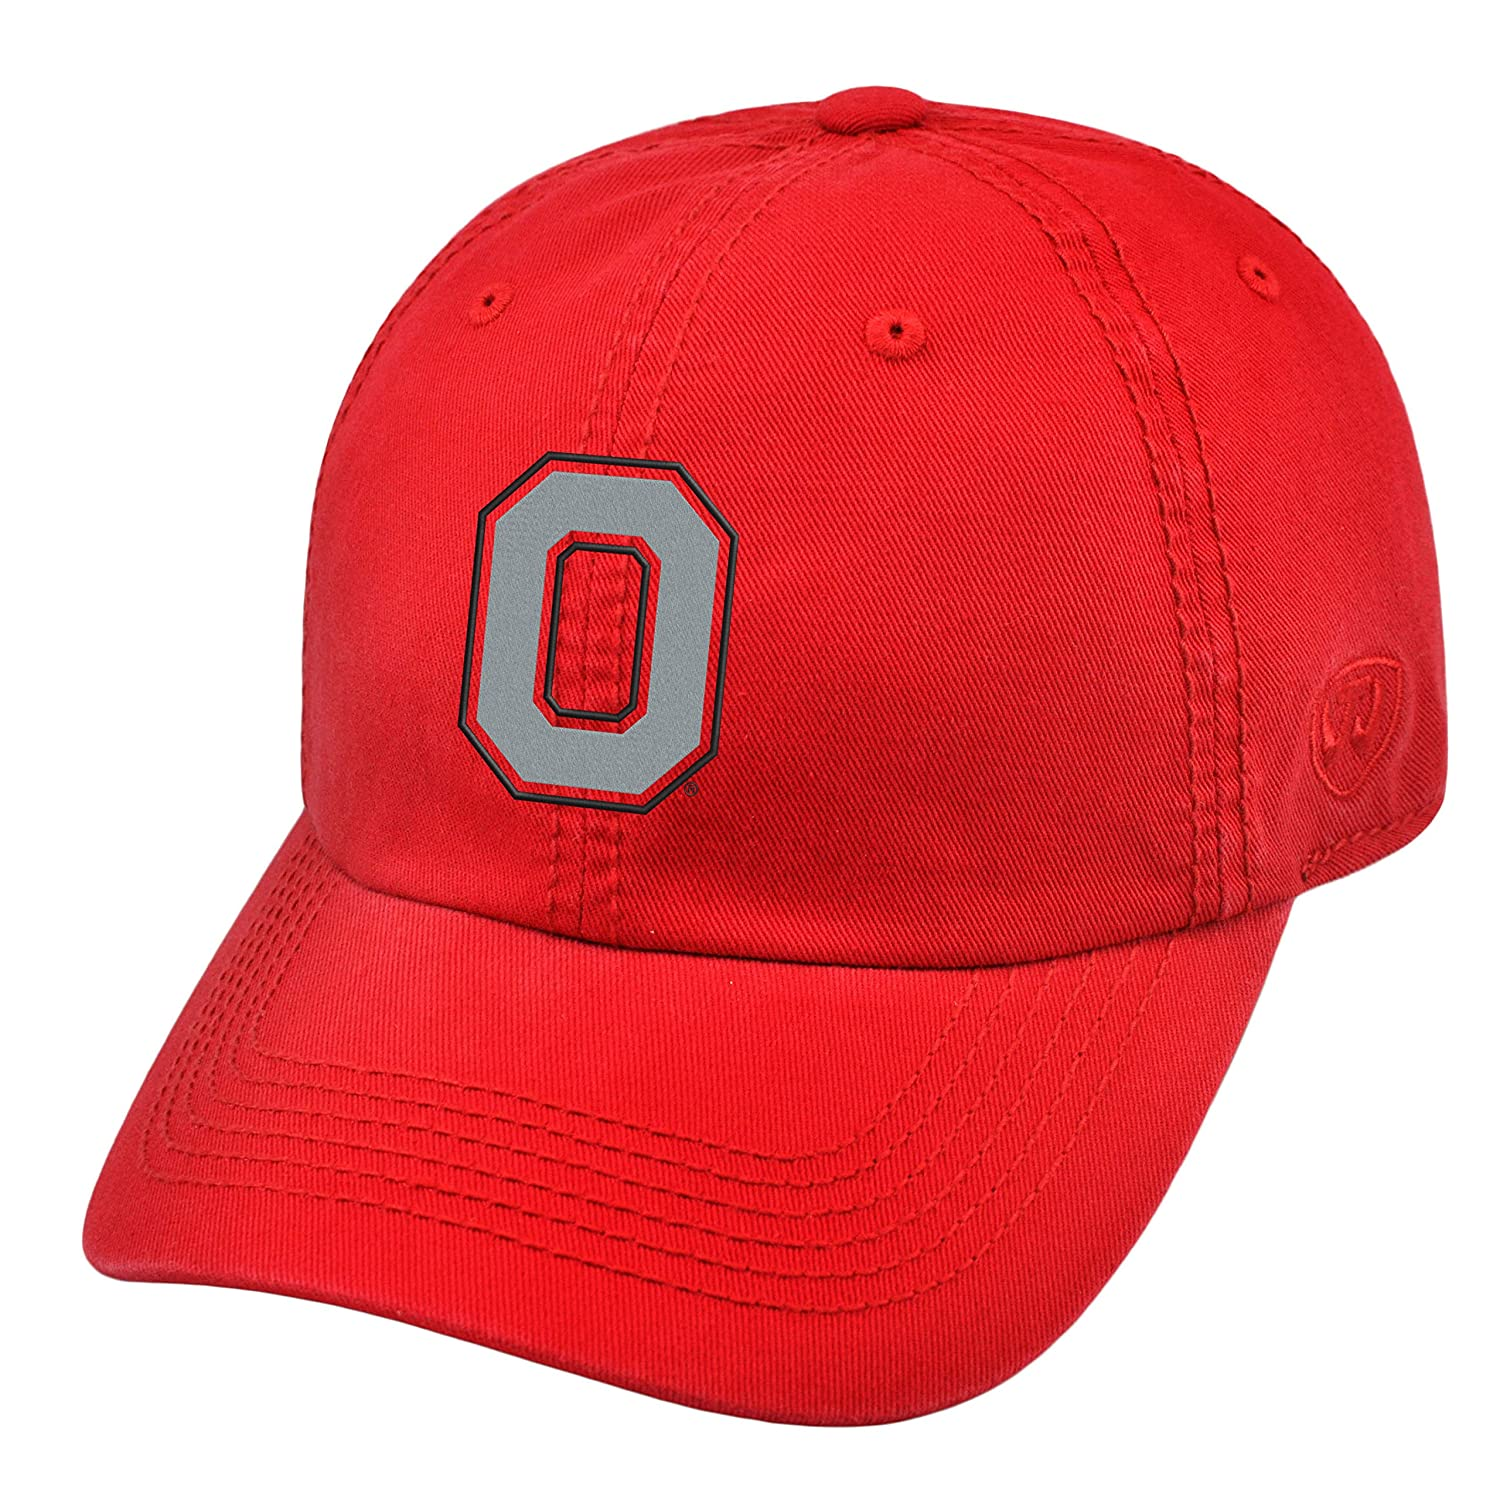 competitive price c9440 ca7f6 Amazon.com  Top of the World Ohio State Buckeyes Official NCAA Adjustable  Crew Hat Cap 203881  Clothing